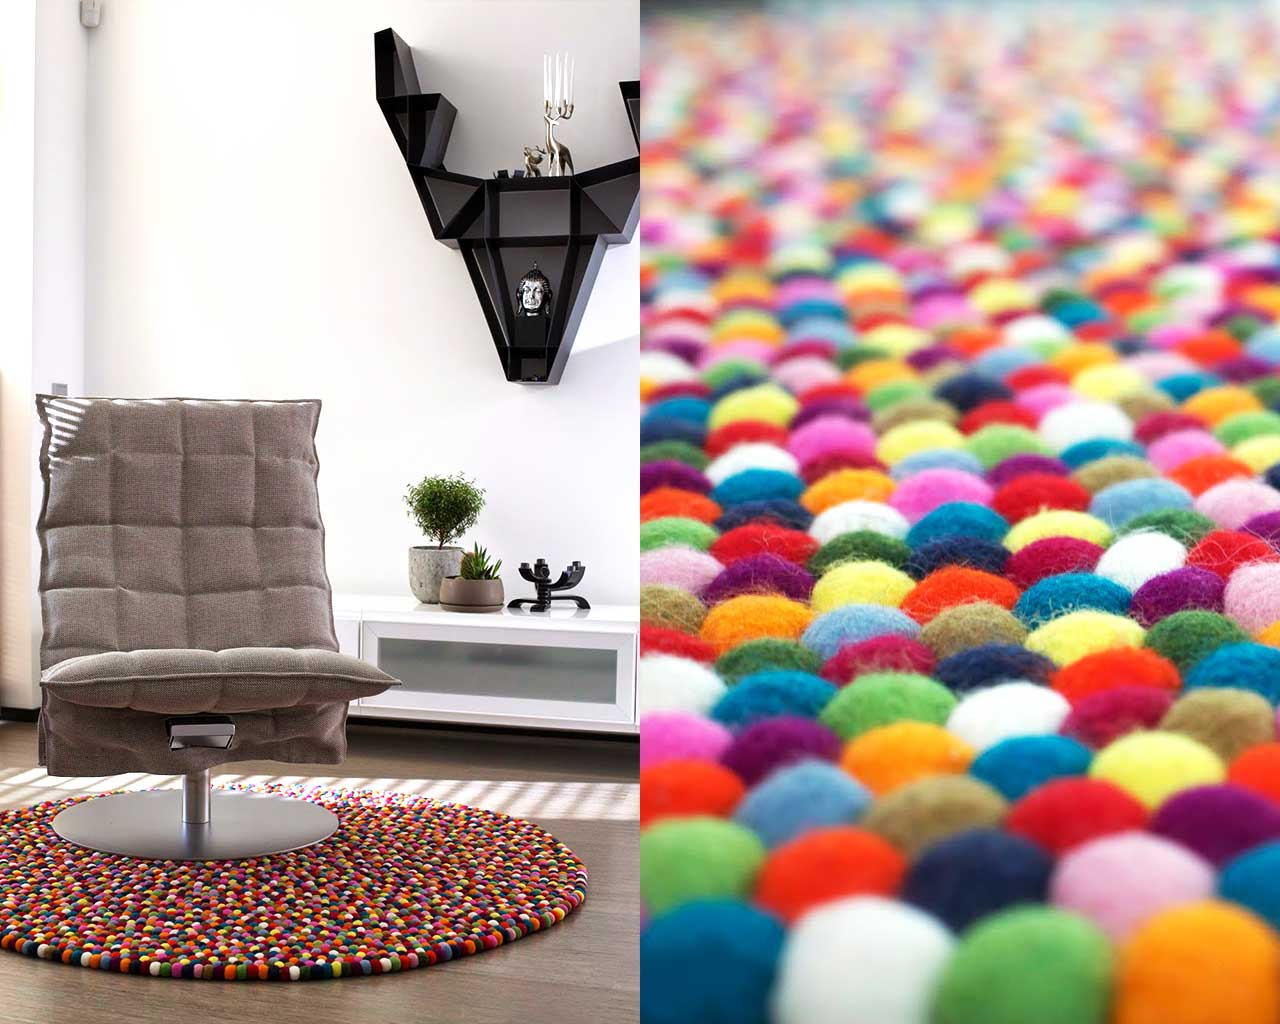 design chair white wall colourful felt carpet